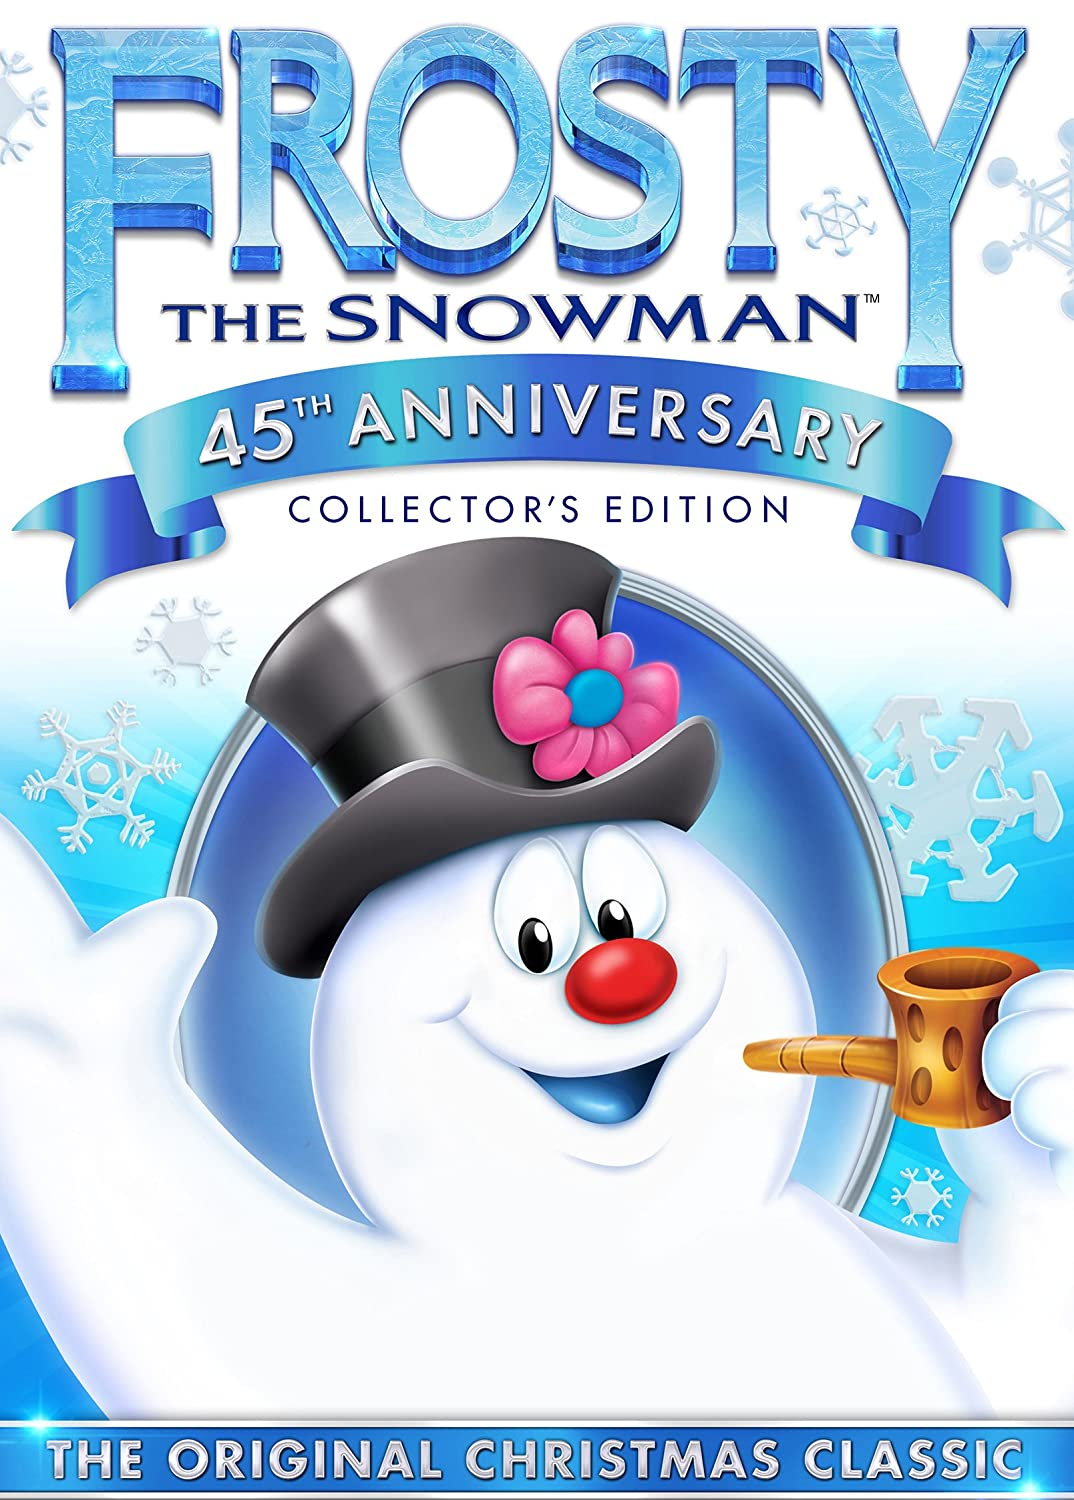 FROSTY THE SNOWMAN 45TH ANNIVERSARY COLLECTOR'S EDITION ANConnect 35225966 Christmas / Chanukkah Family